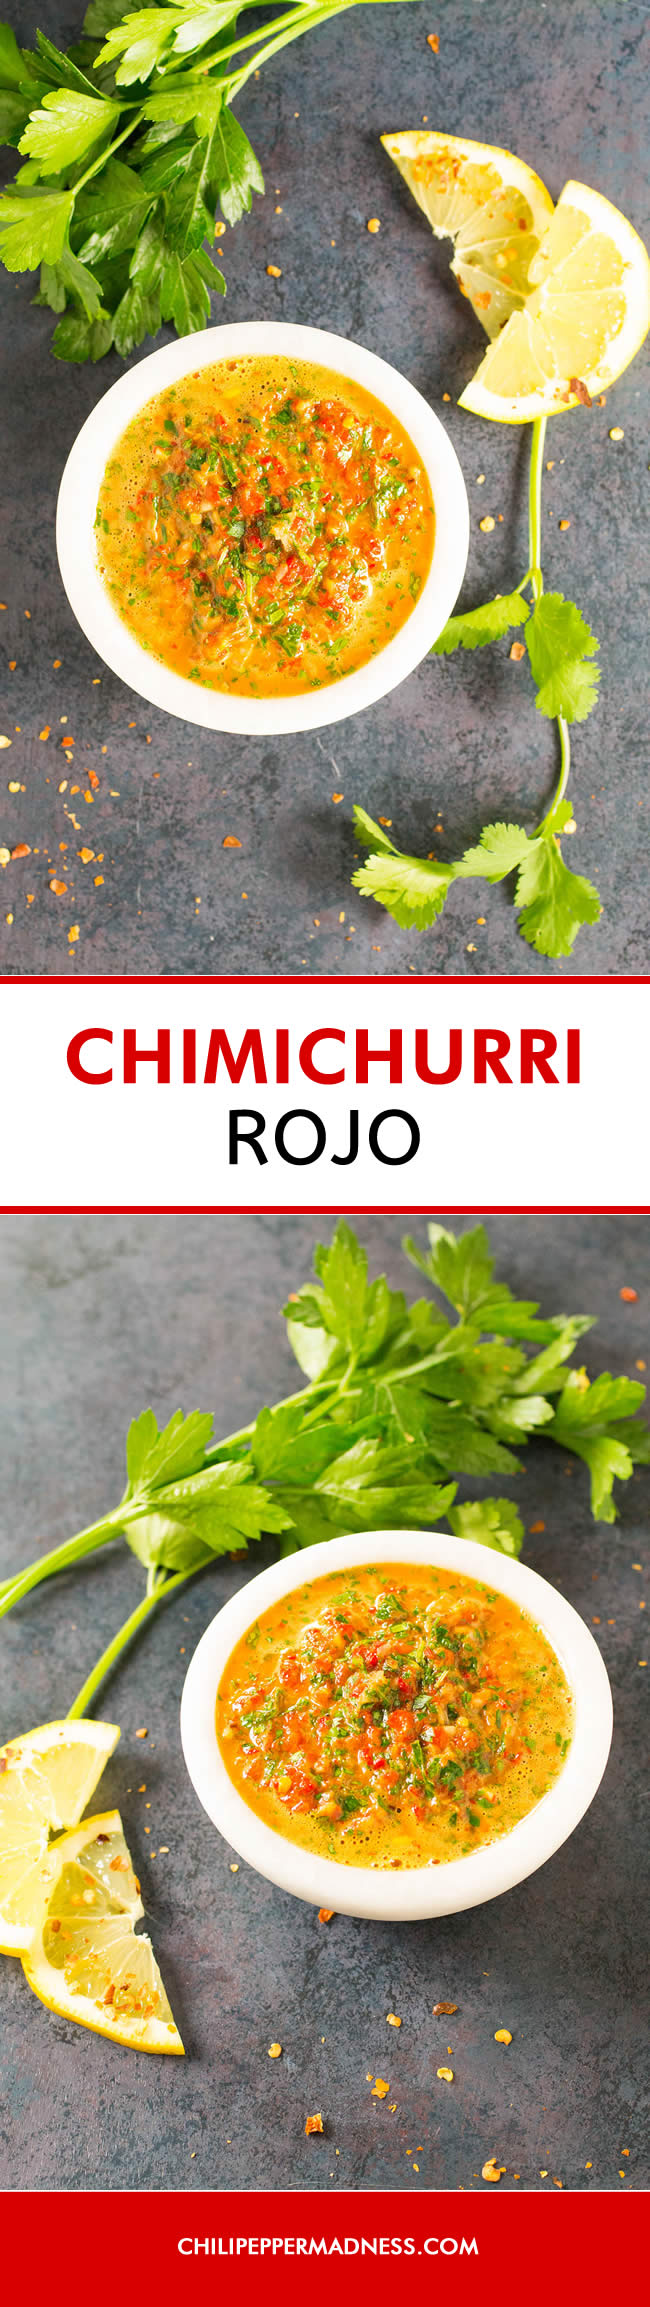 Easy Chimichurri Rojo (Red Chimichurri) - Recipe